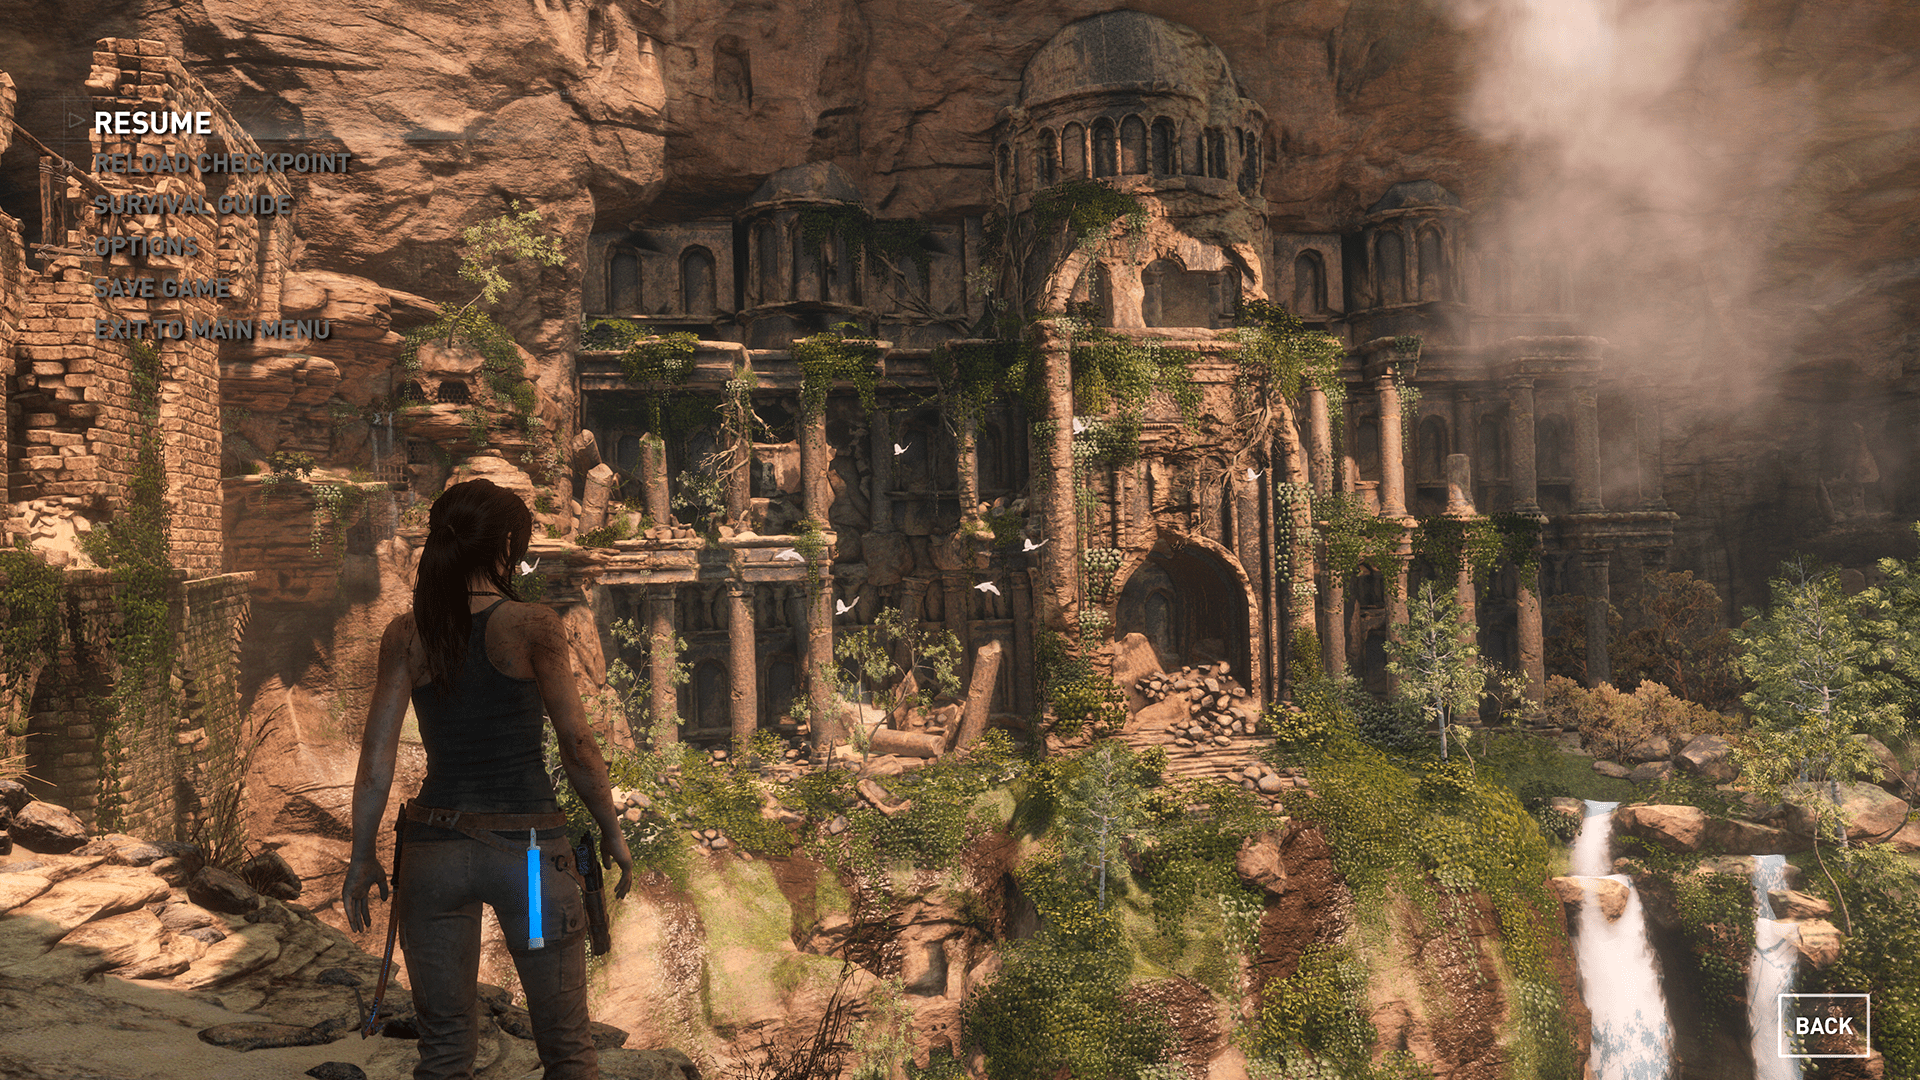 GeForcecom Rise of the Tomb Raider Level of Detail Interactive Comparison Very High vs Low